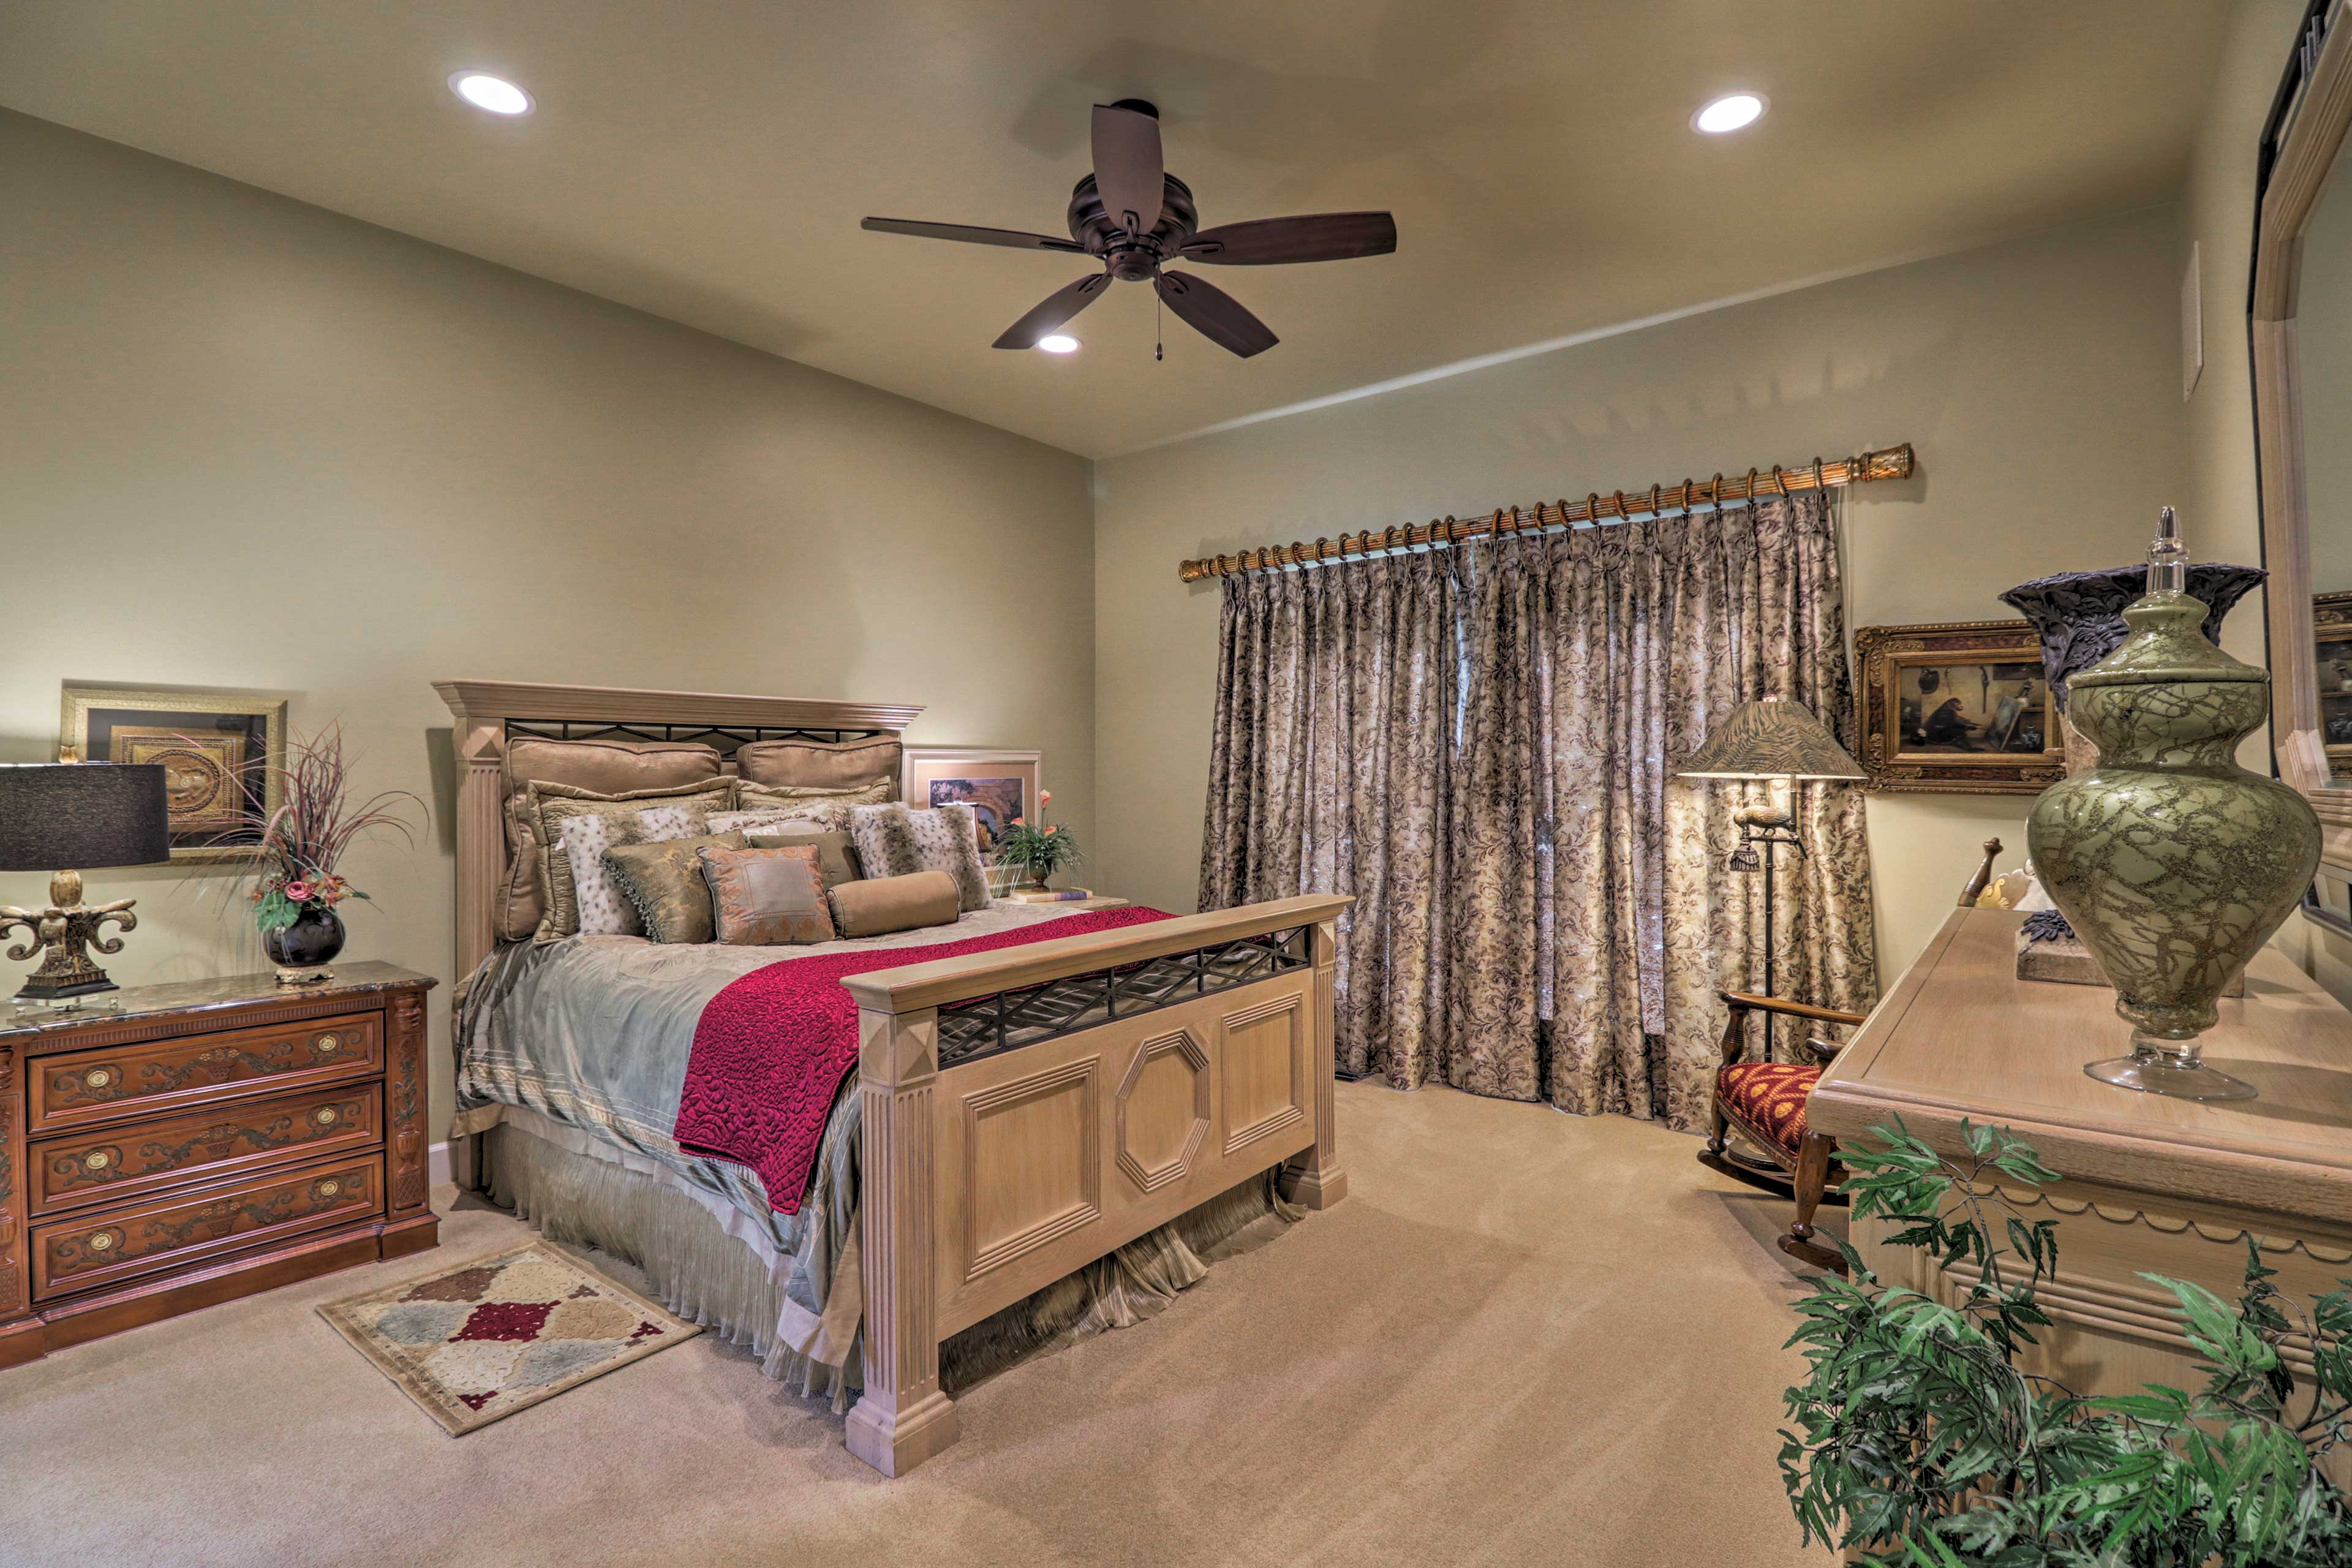 The second bedroom boasts a queen bed and custom draperies & linens.